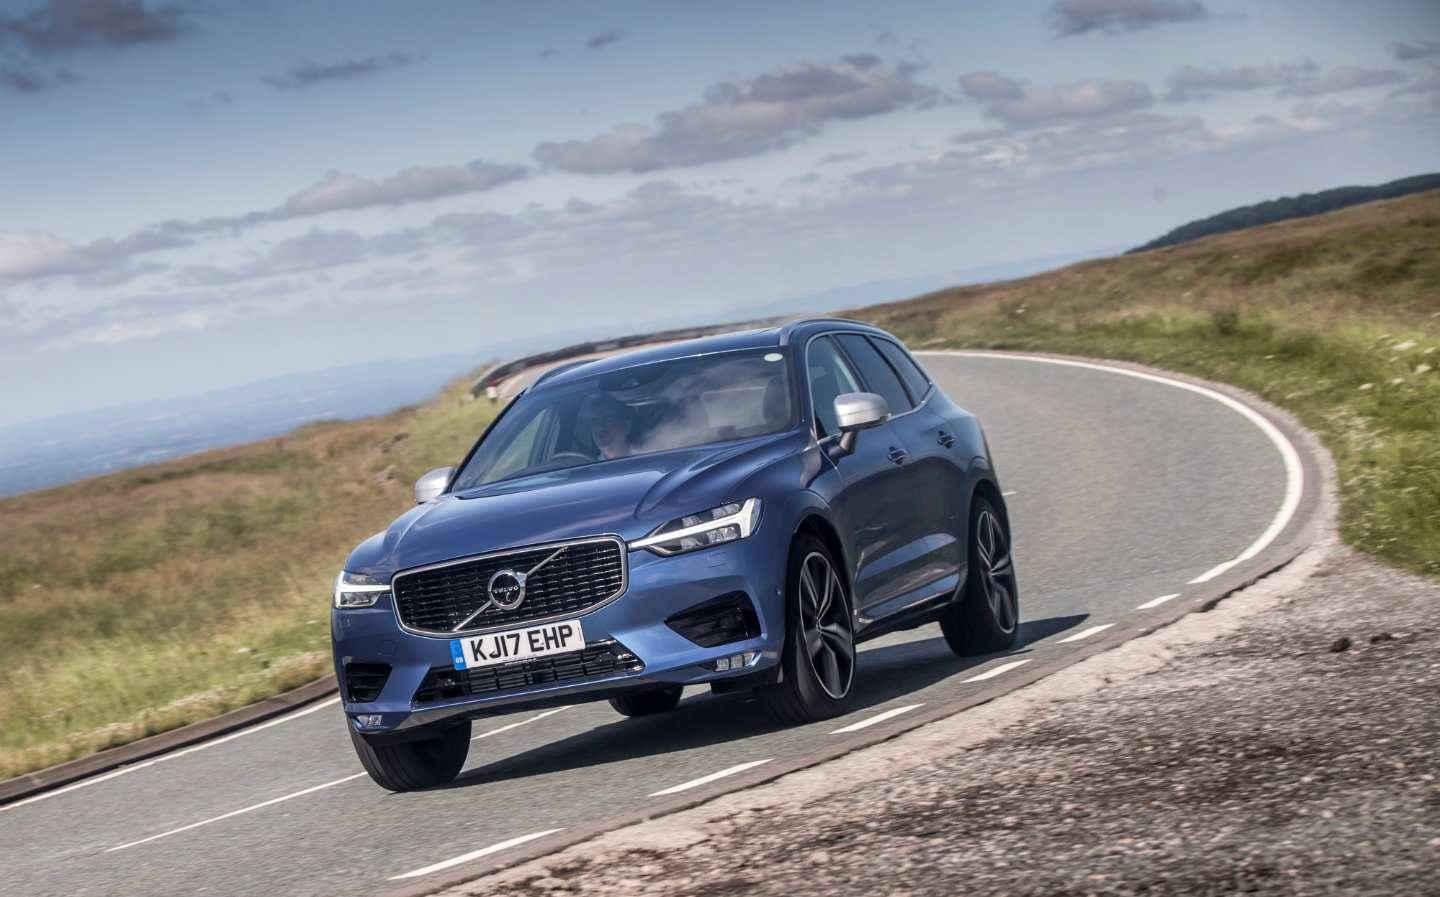 59 All New Volvo Speed Limit 2020 Overview for Volvo Speed Limit 2020